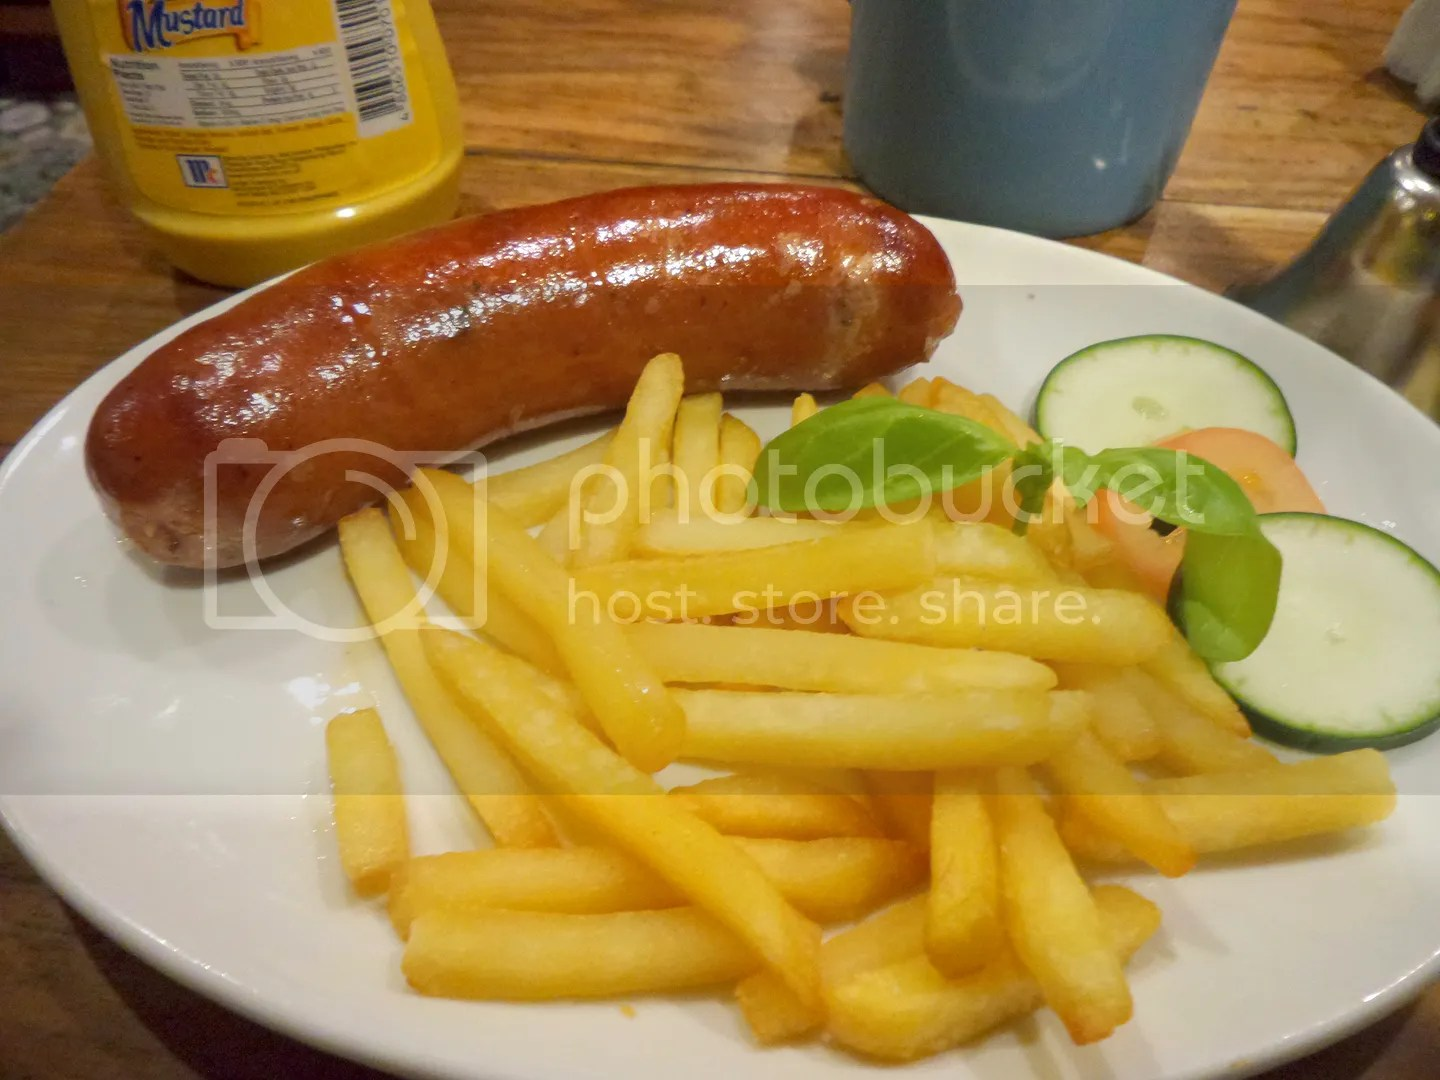 Hungarian Sausage - Choose from a selection of Hungarian, Ausburger and Schublig sausages served with a side of french fries.